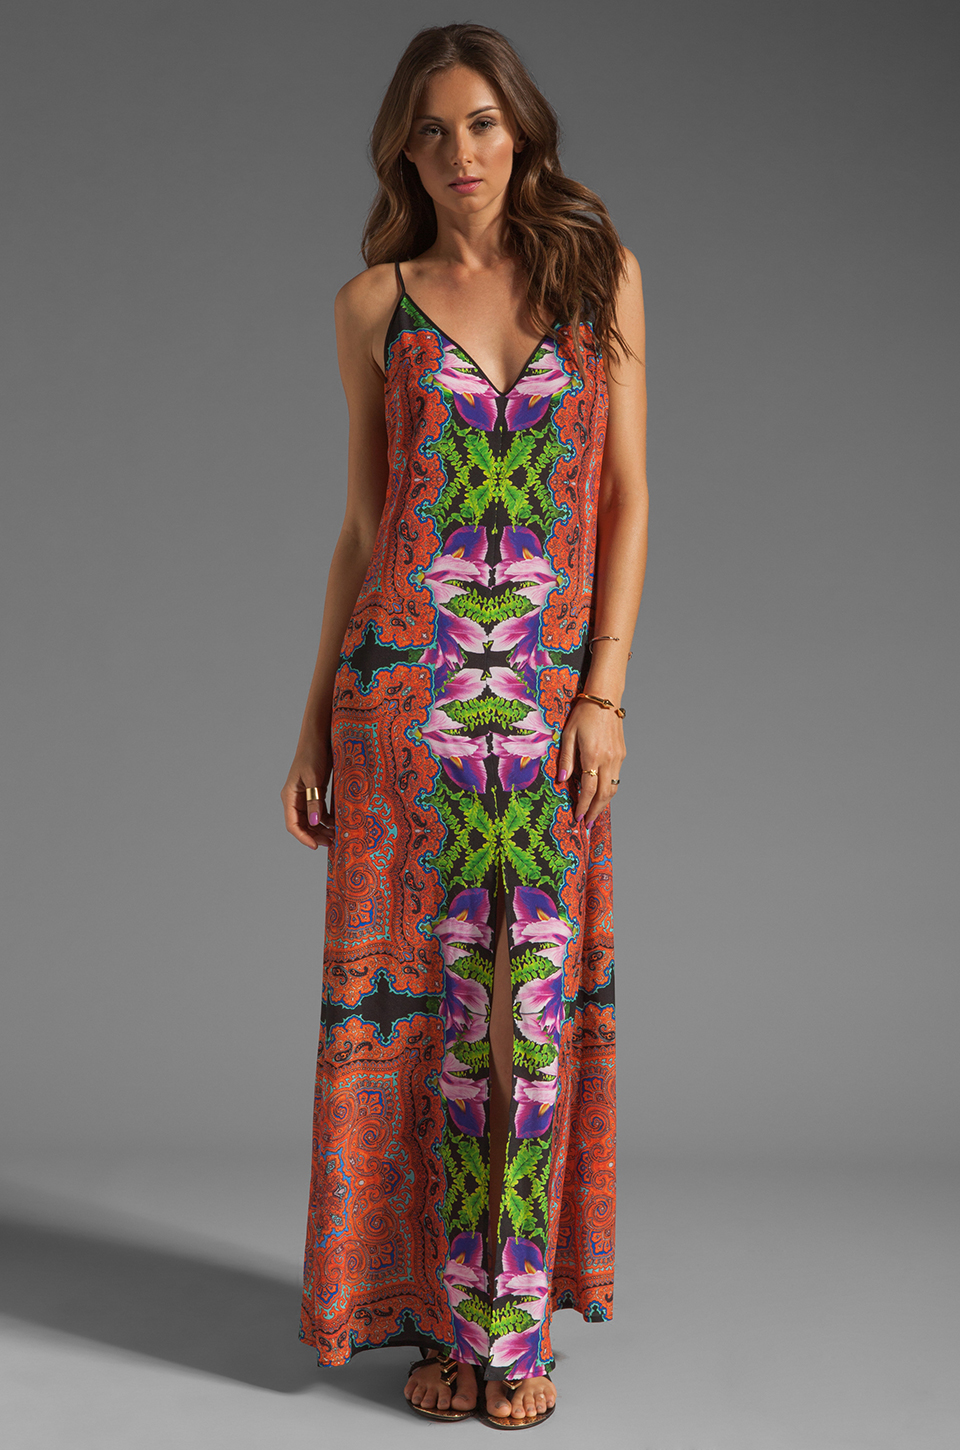 Clover Canyon Orchid Trip Dress in Multi